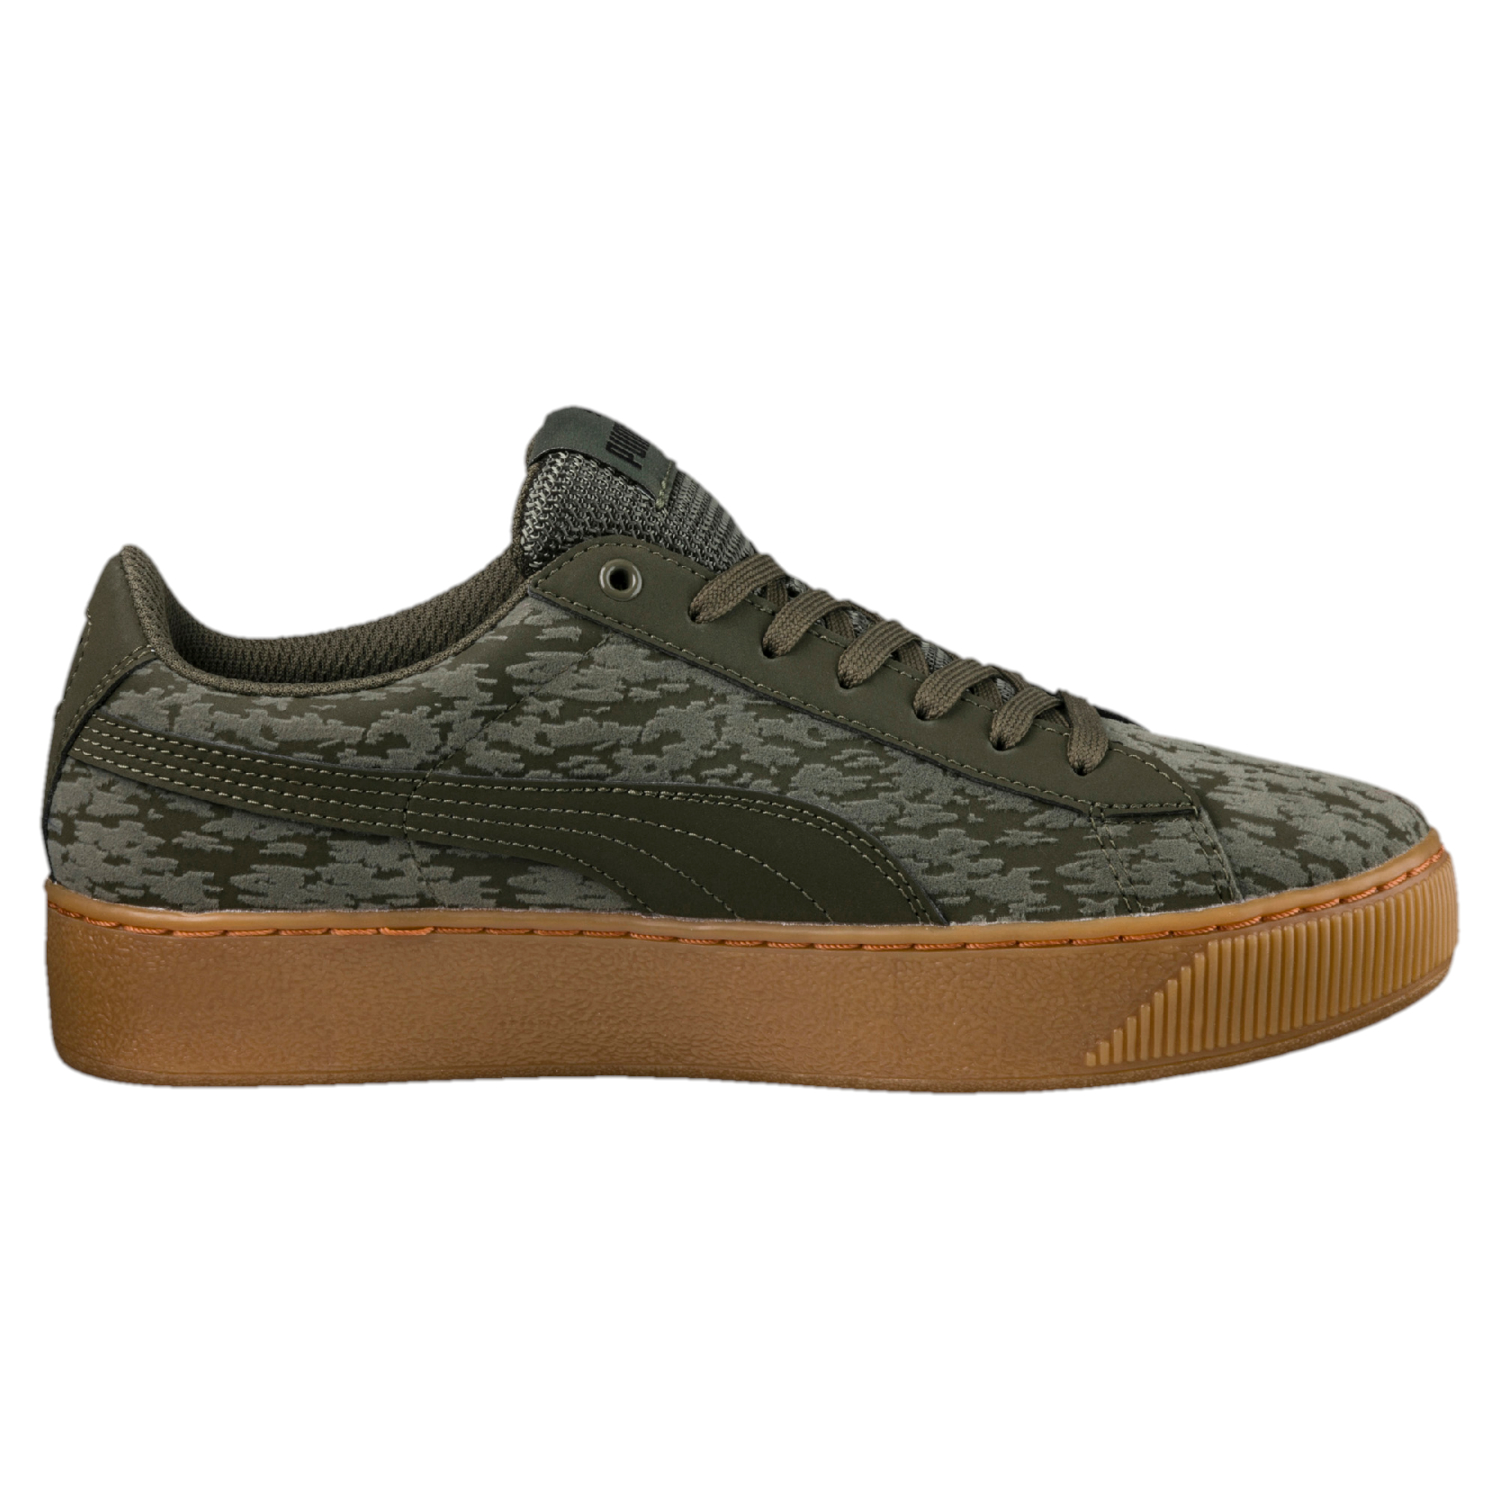 puma damen sneaker vikky platform vr 363730 0001 olive. Black Bedroom Furniture Sets. Home Design Ideas